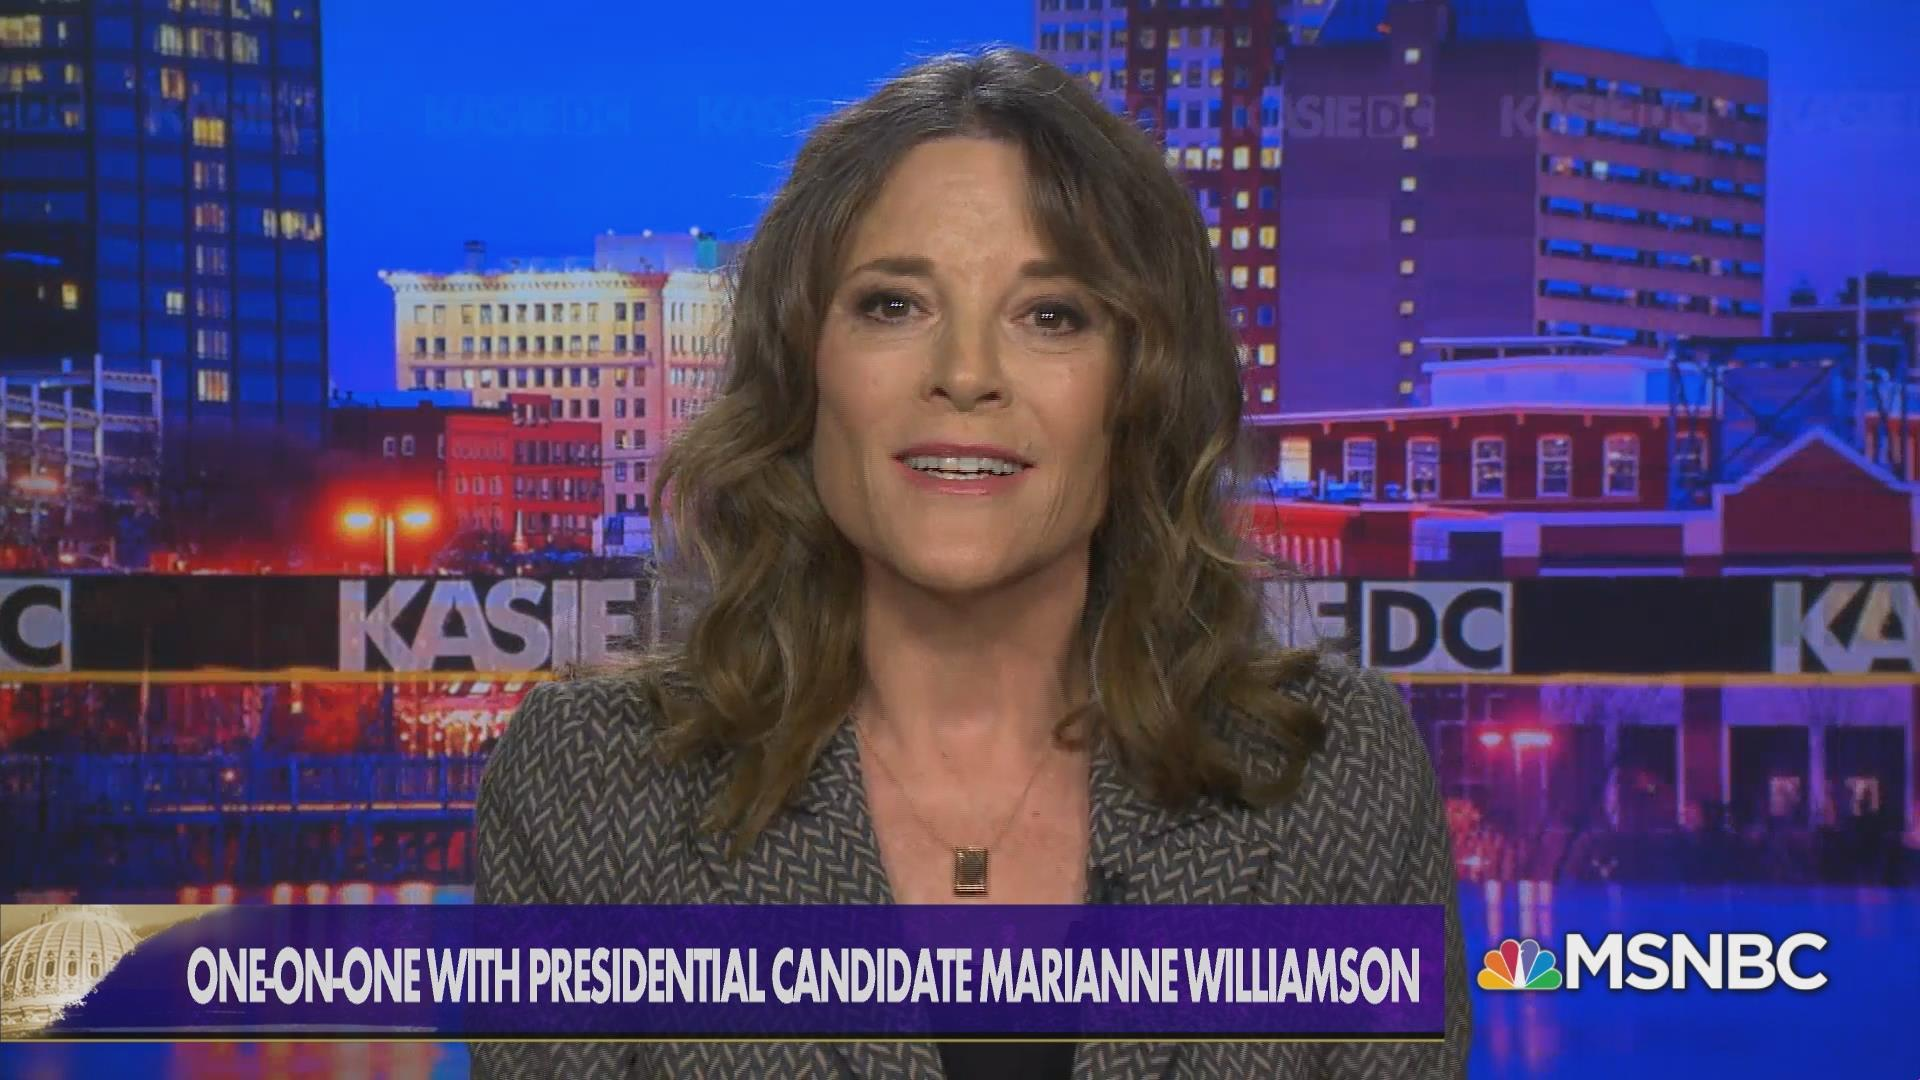 'I'm talking about creating a moral economy.' Behind in polls, Williamson stands by mission of campaign